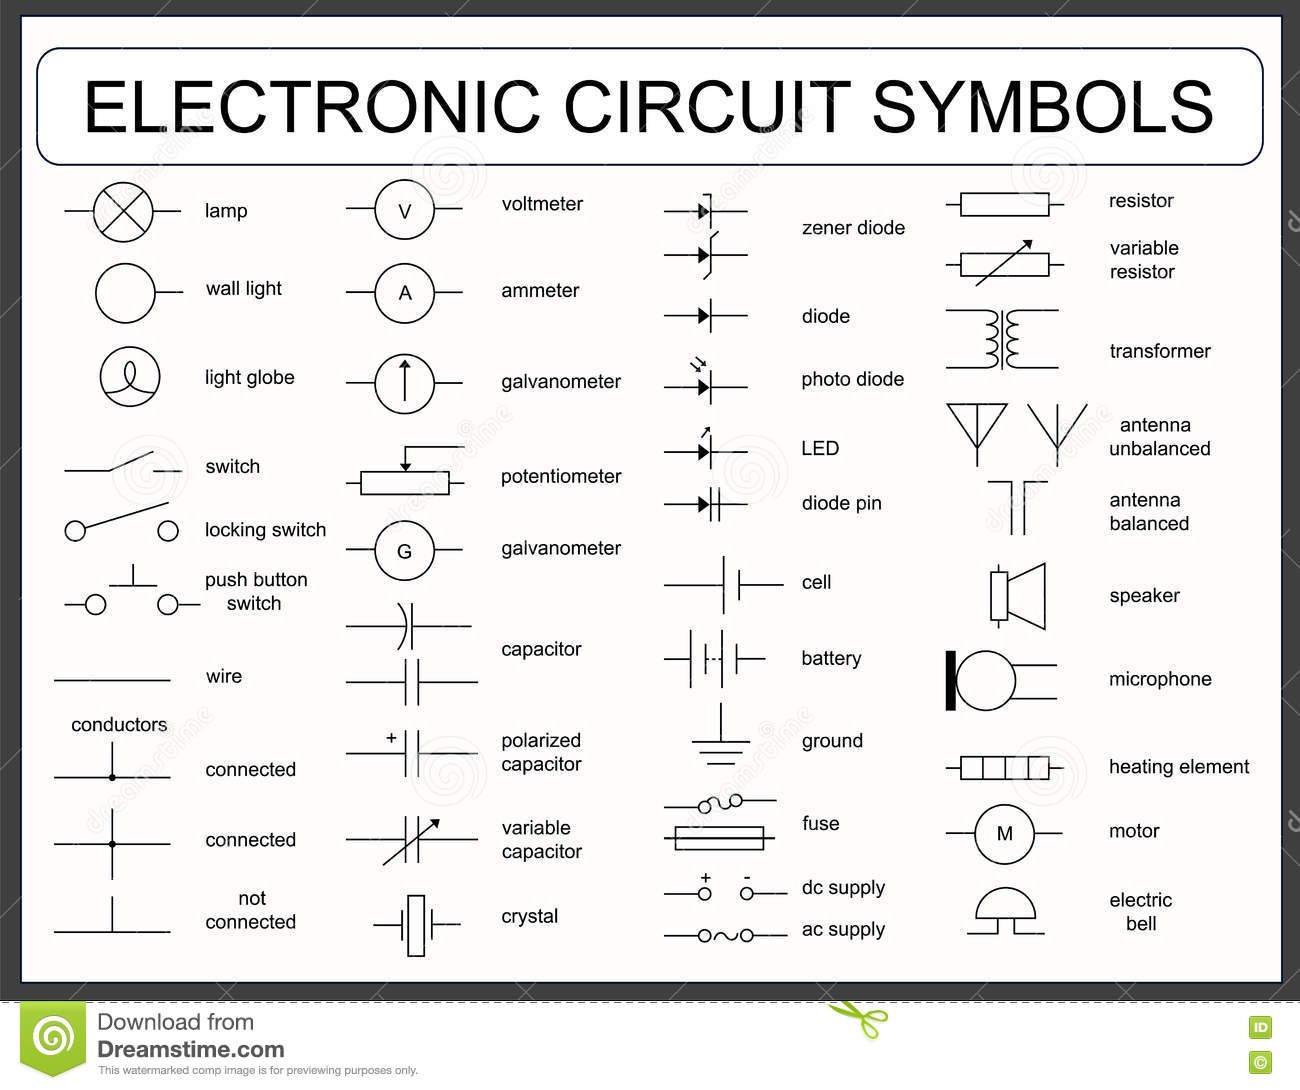 Auto Electrical Symbols Meaning